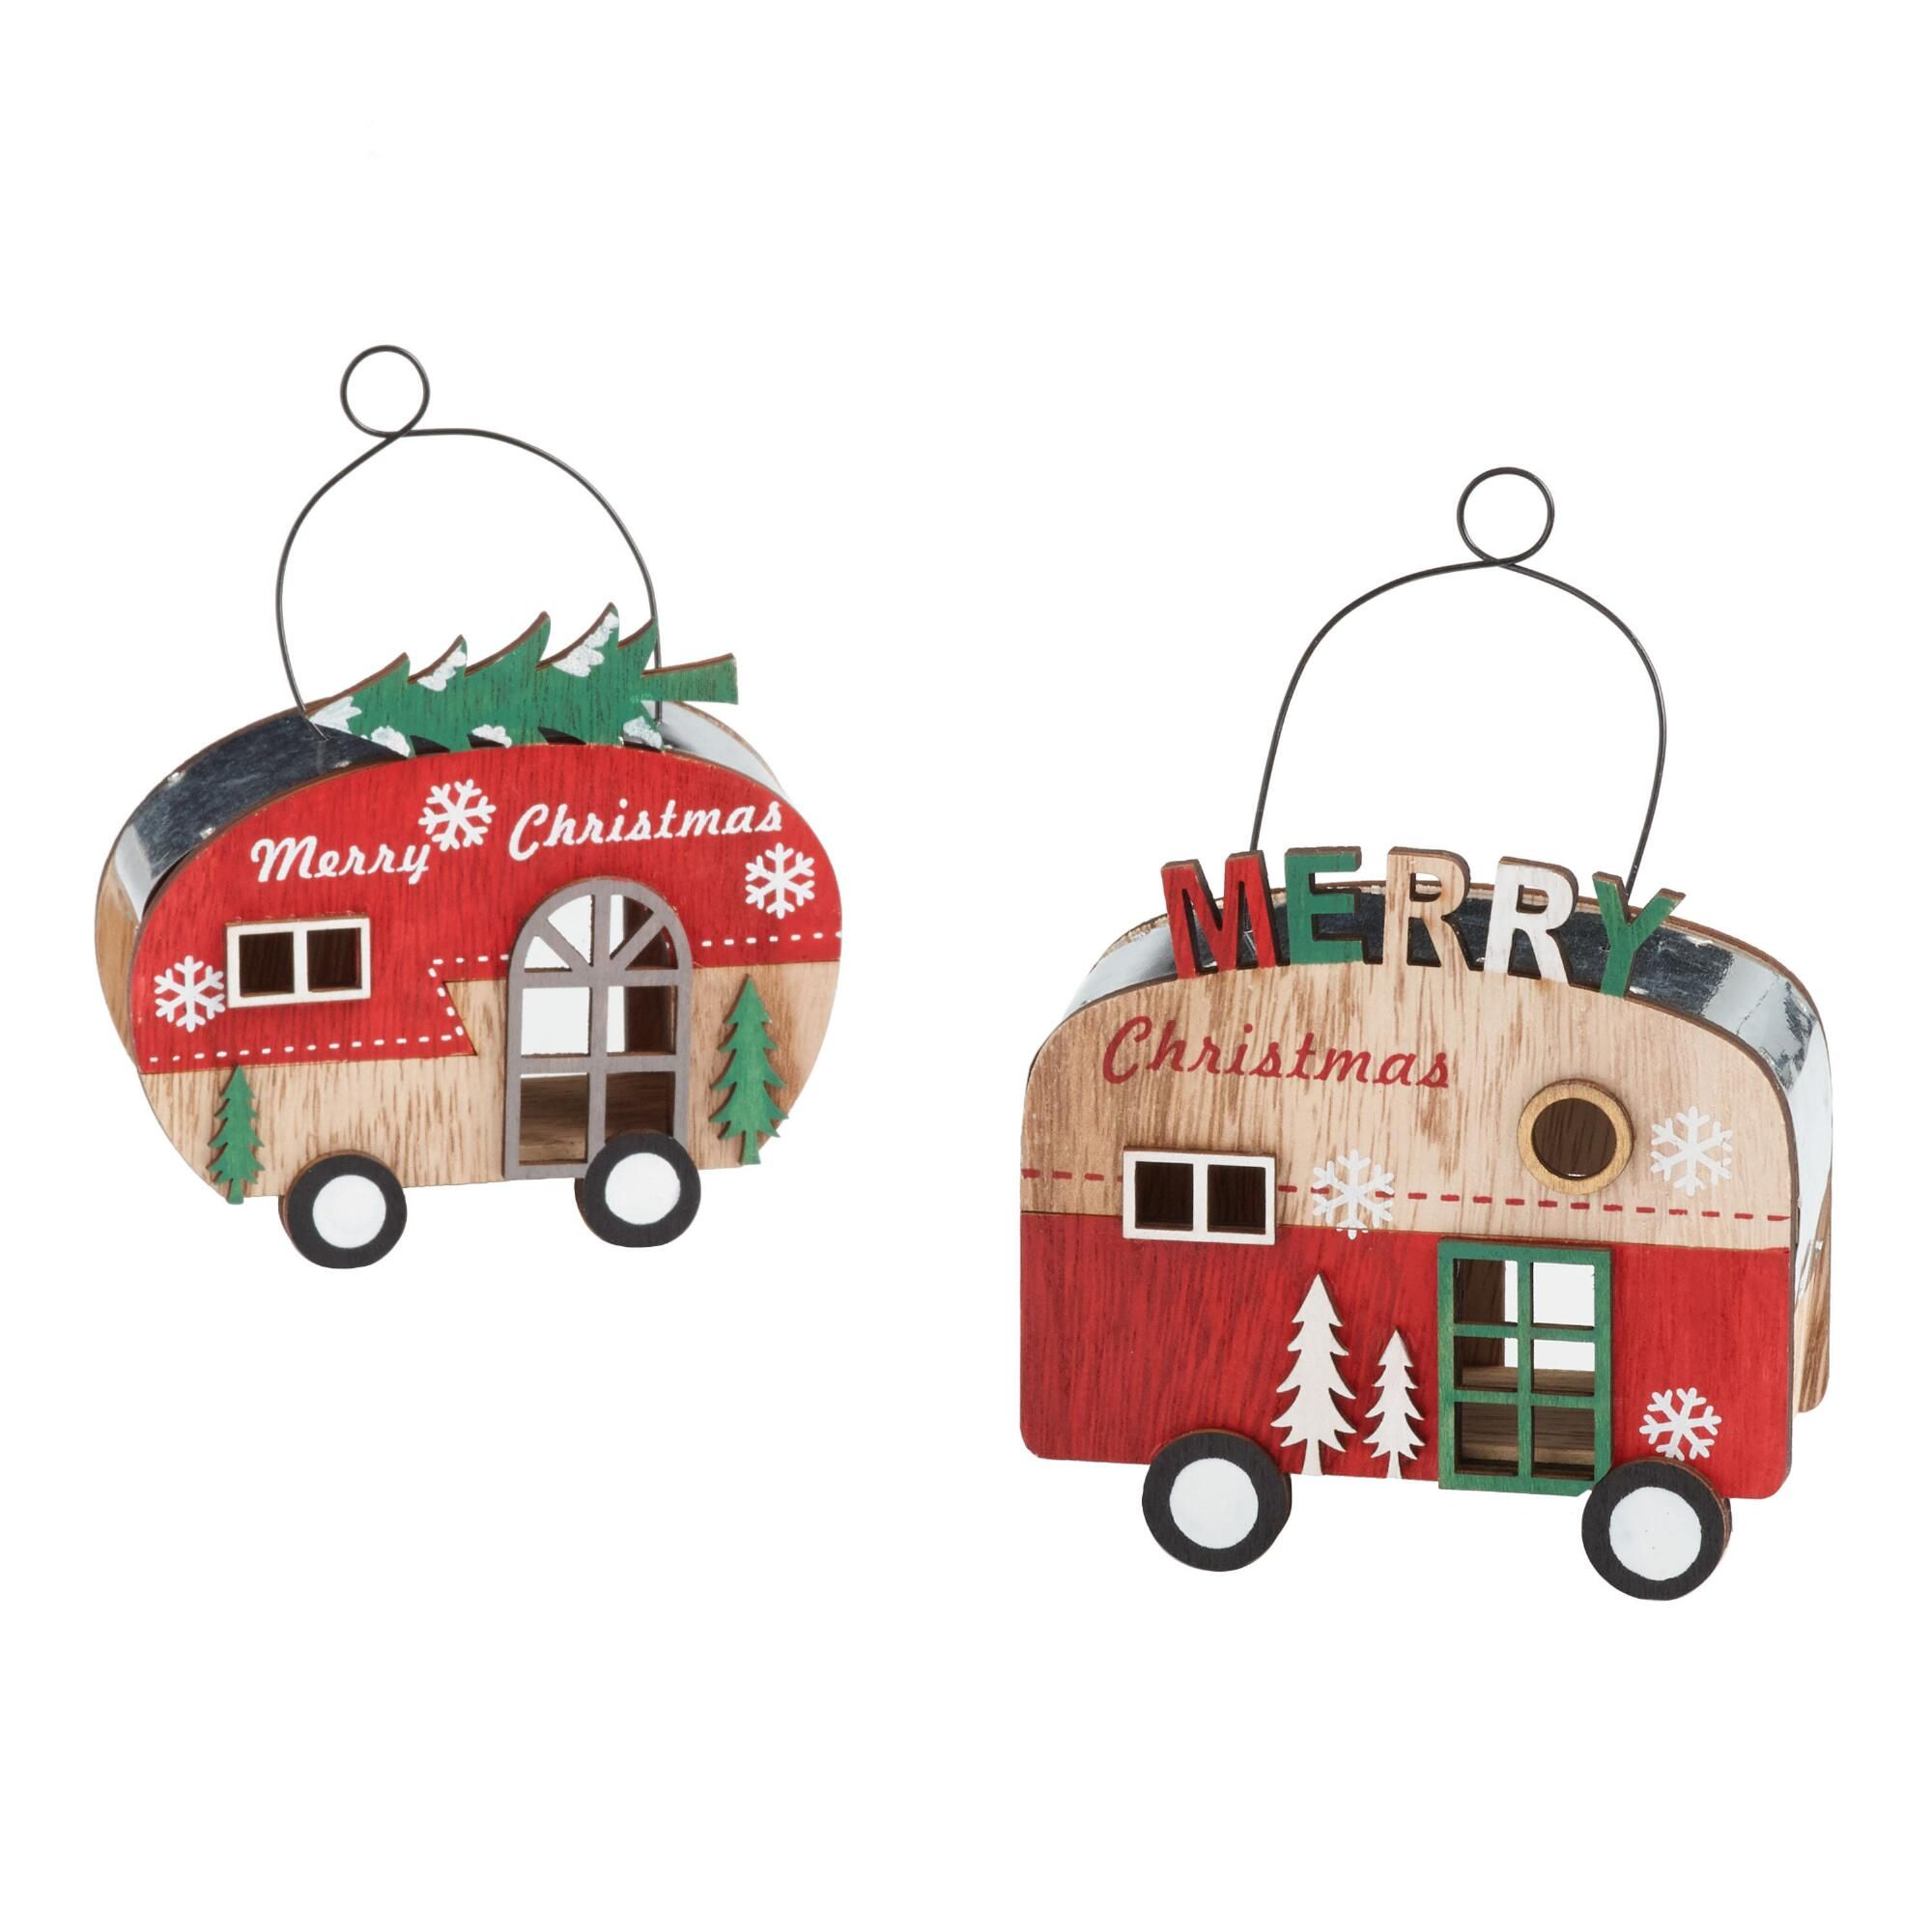 Metal And Wood Christmas Trailer Ornaments Set Of 2 Multi Small By World Market Christmas Trailer Unique Christmas Ornaments Christmas Trailer Ornament